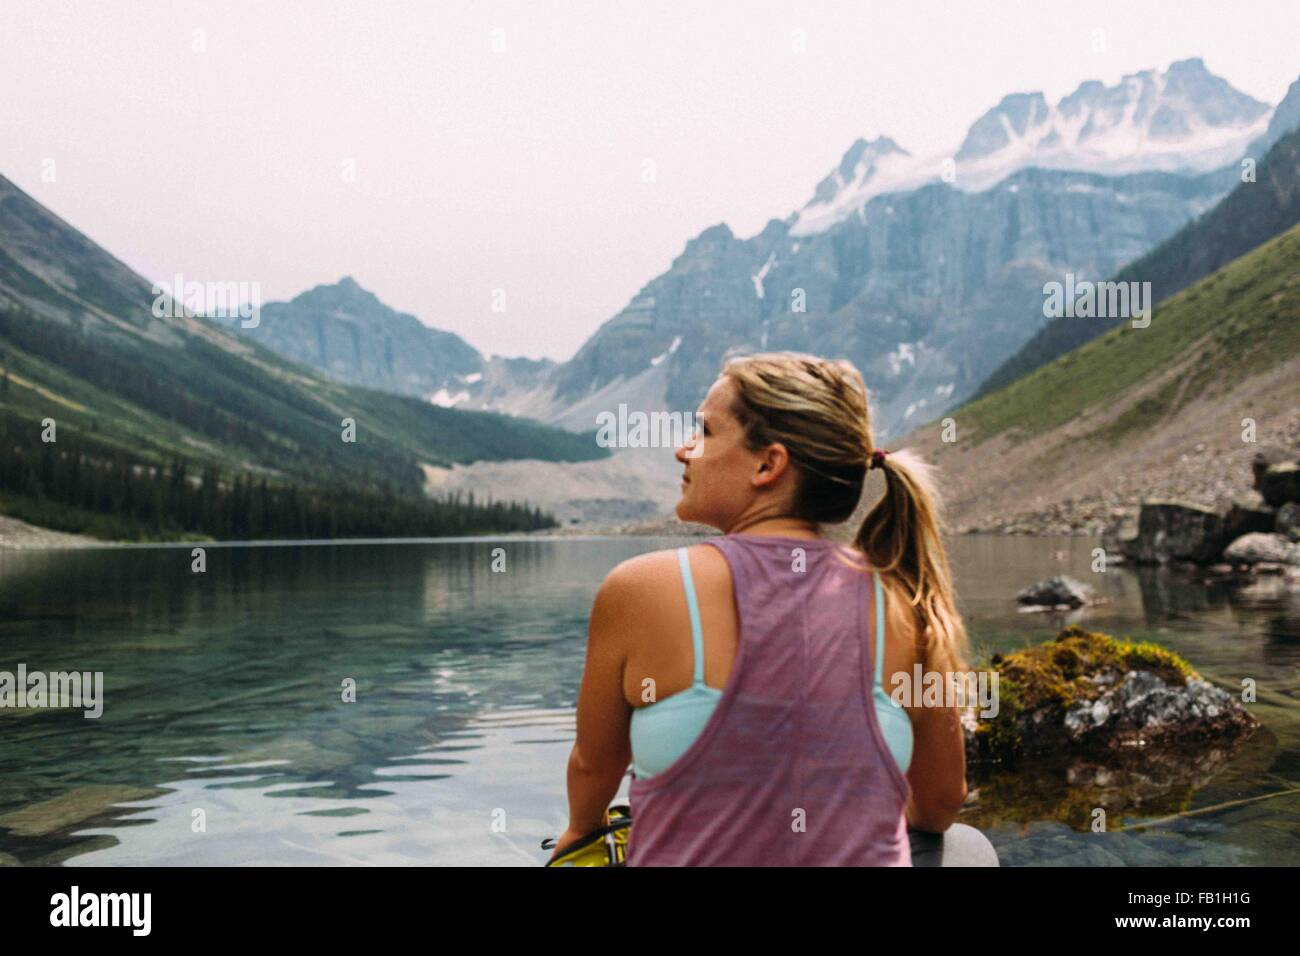 Rear view of mid adult woman sitting at waters edge looking away, Moraine Lake, Banff National Park, Alberta Canada - Stock Image